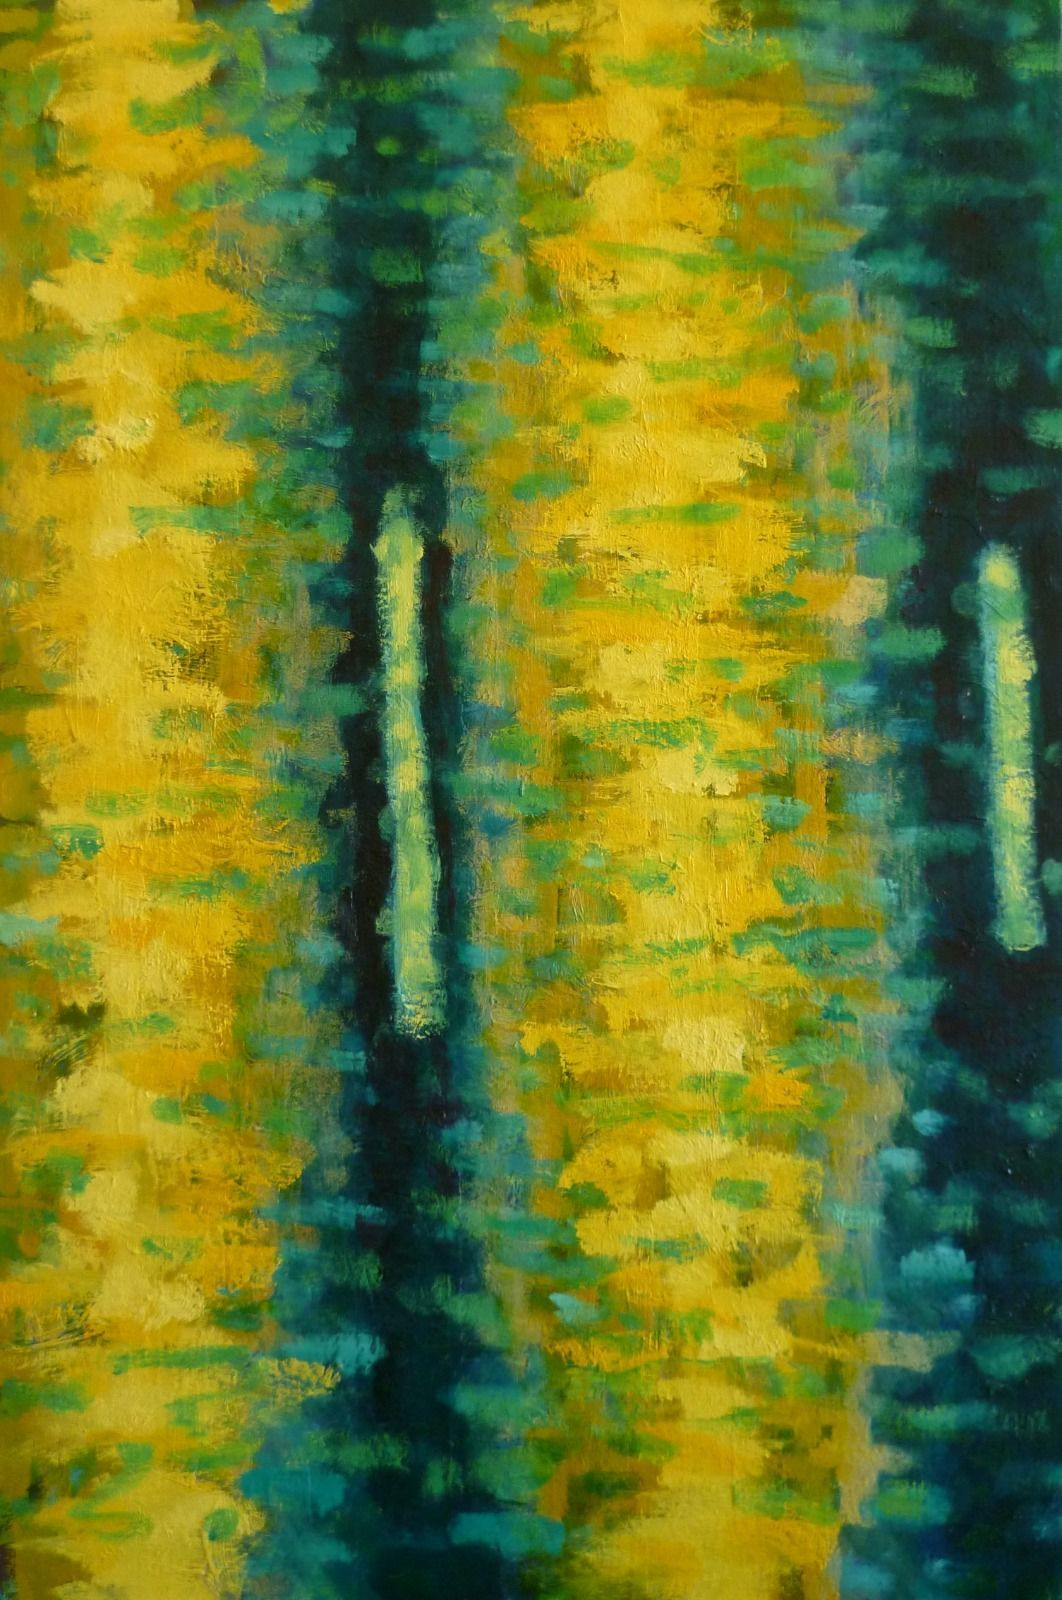 de Broglie 4. 50x76 x1.8cm(oil on canvas)